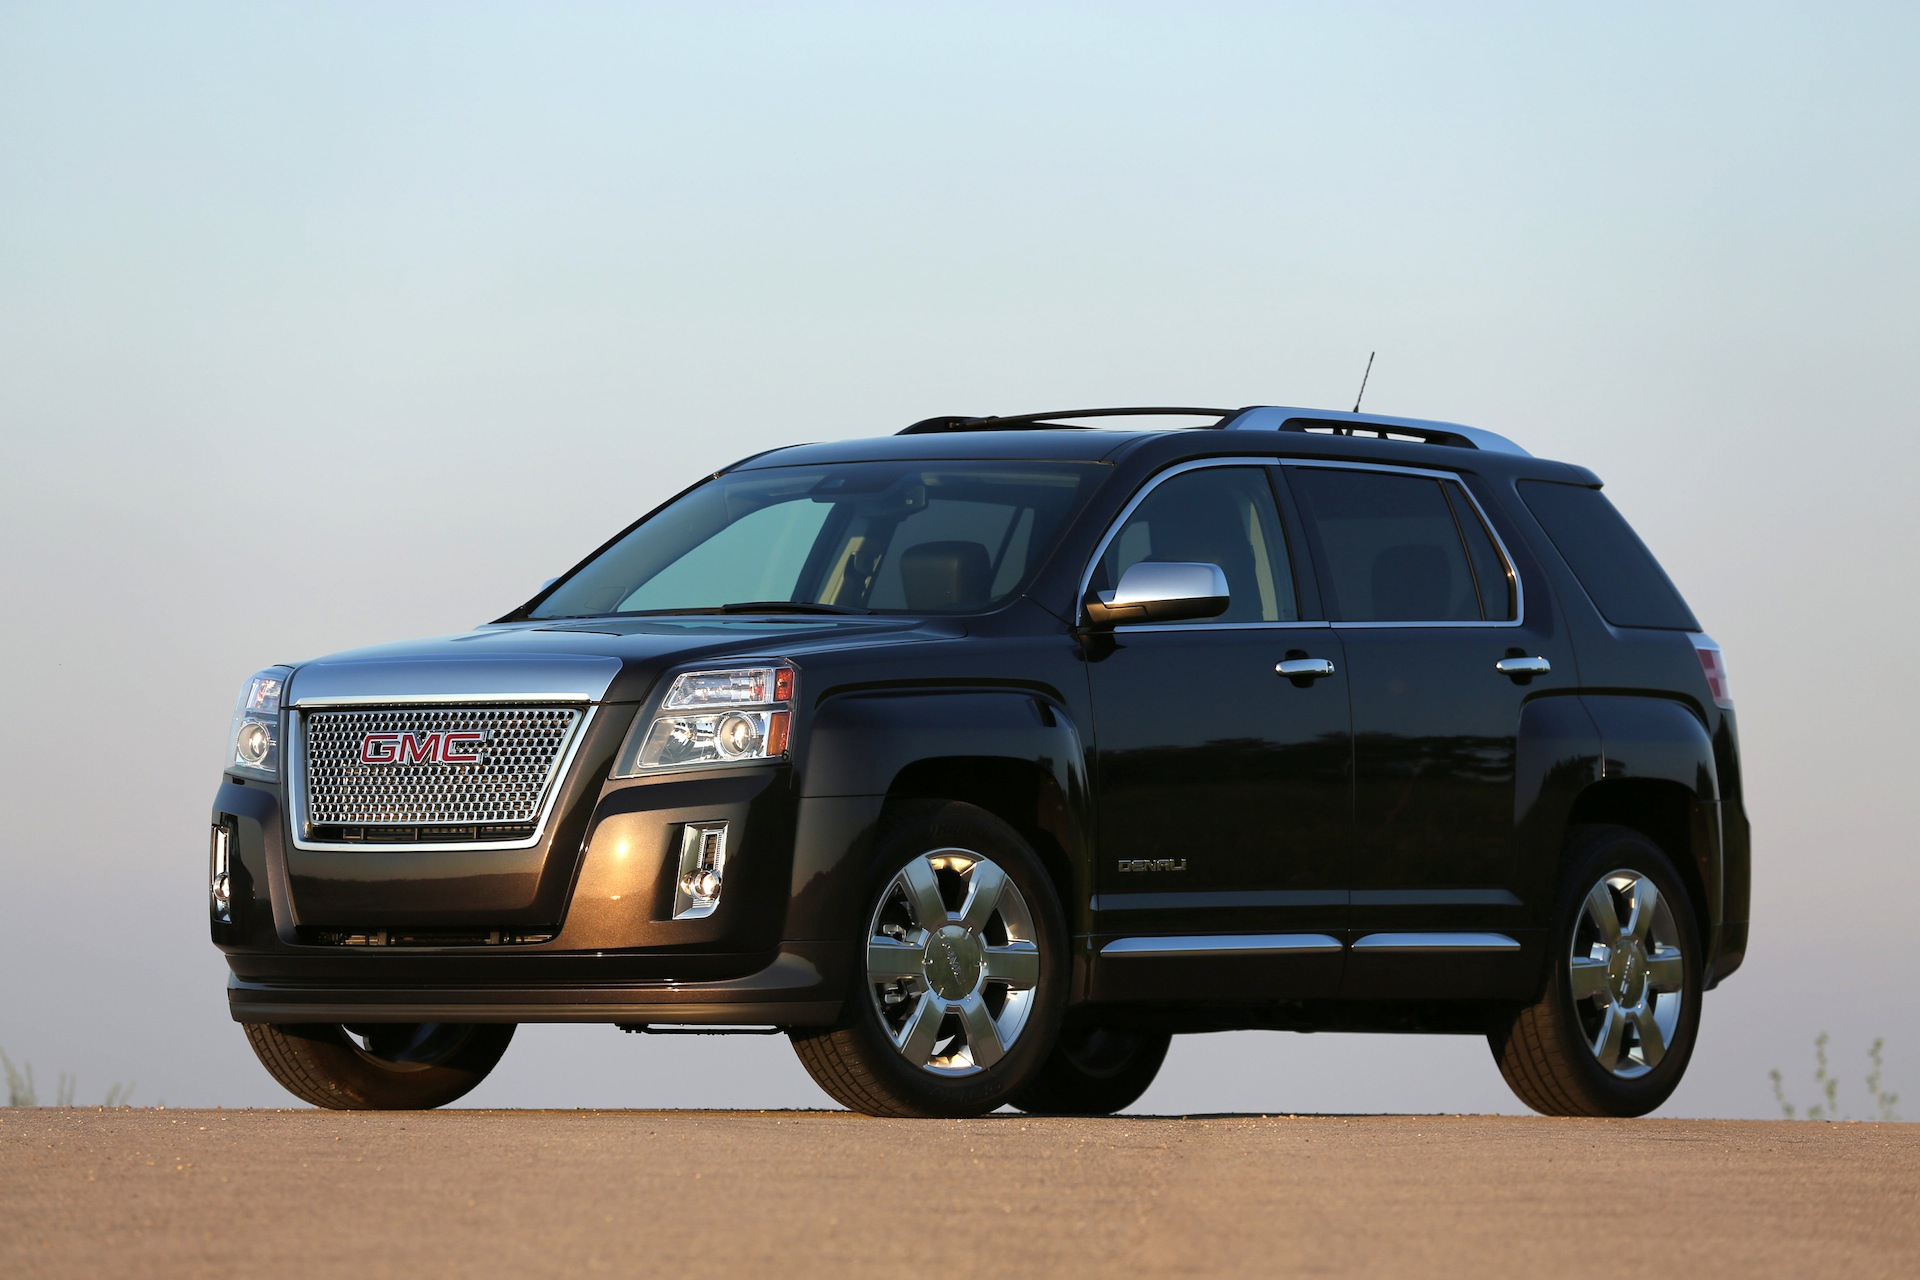 2014 Gmc Terrain Prices And Expert Review The Car Connection